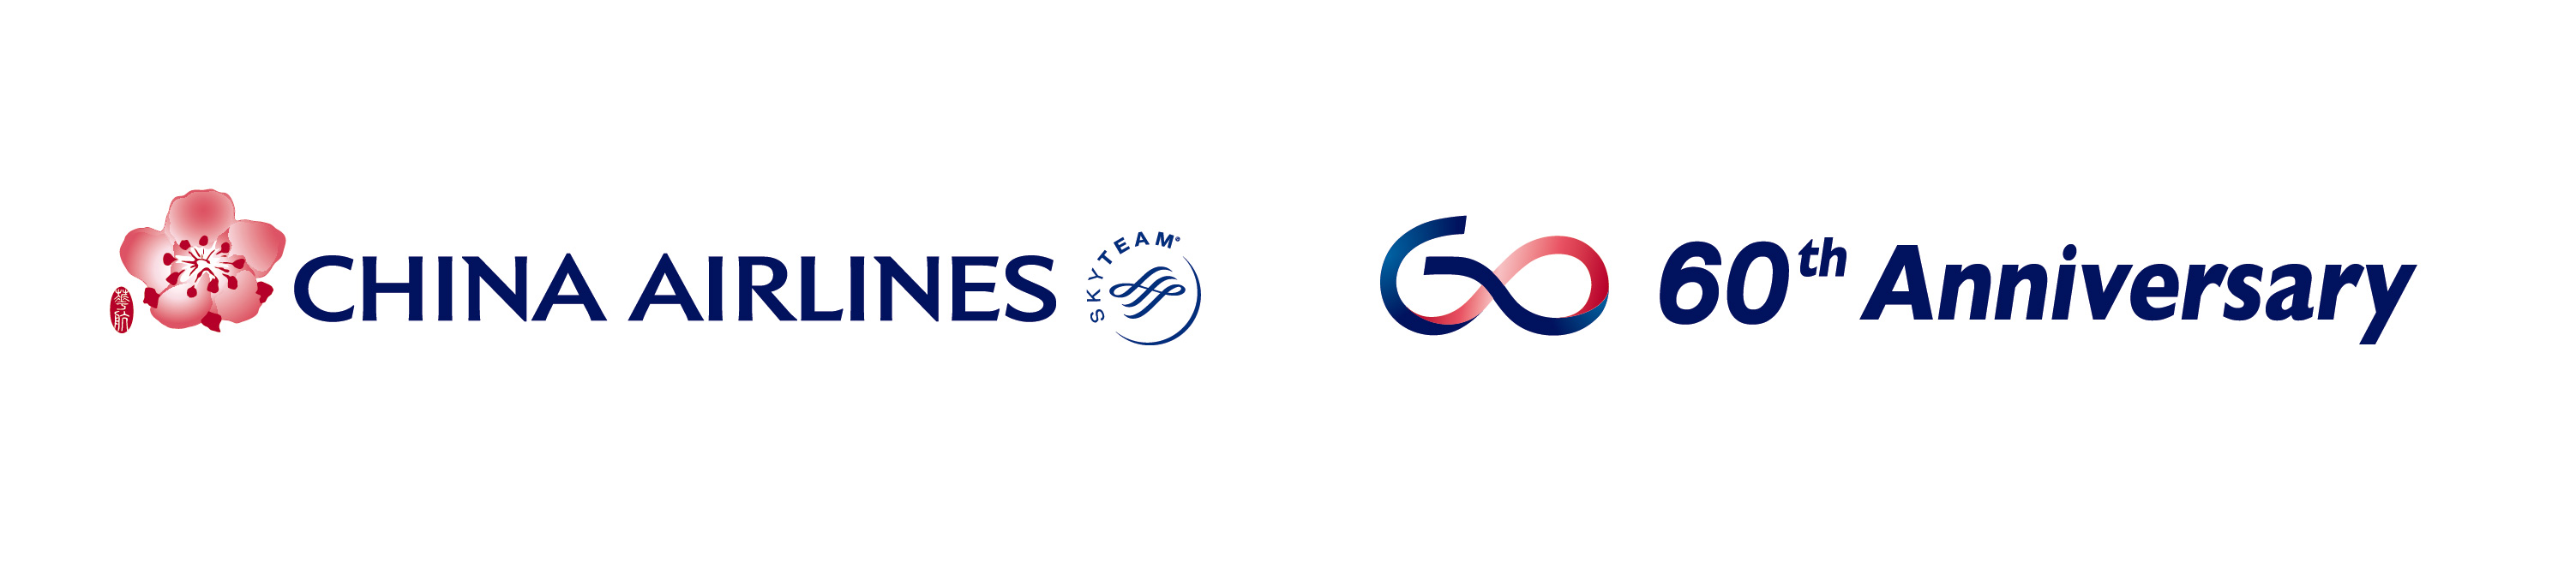 China Airlines Online Sales 60周年CI logo Horz